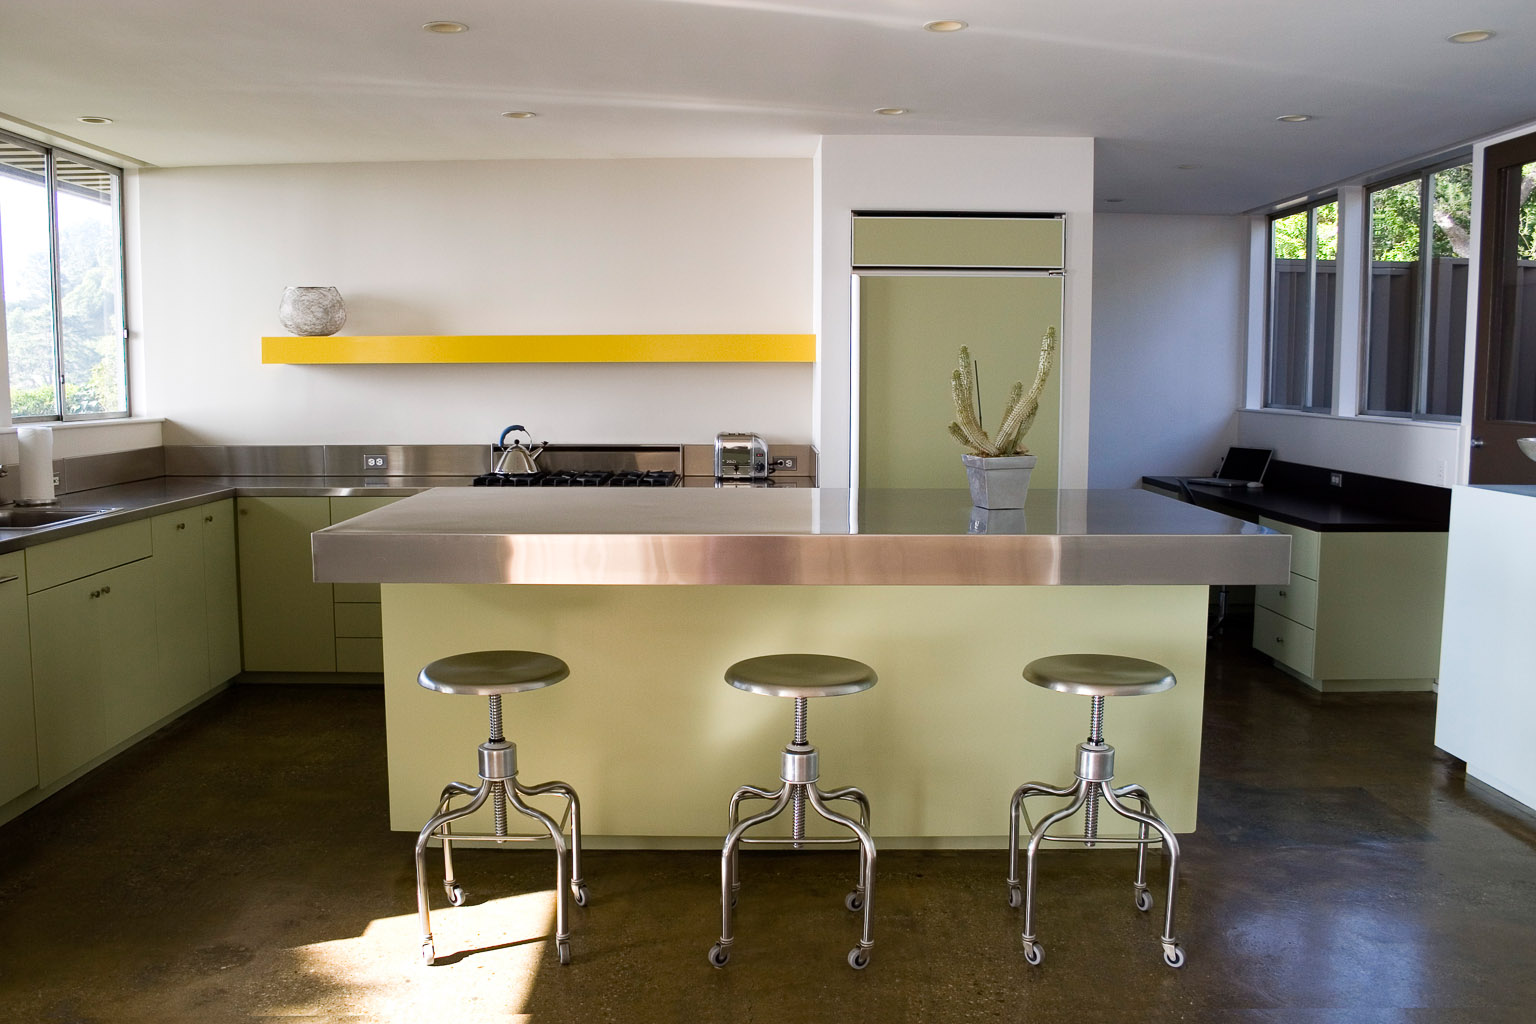 Chrome Kitchen with 3 Stools